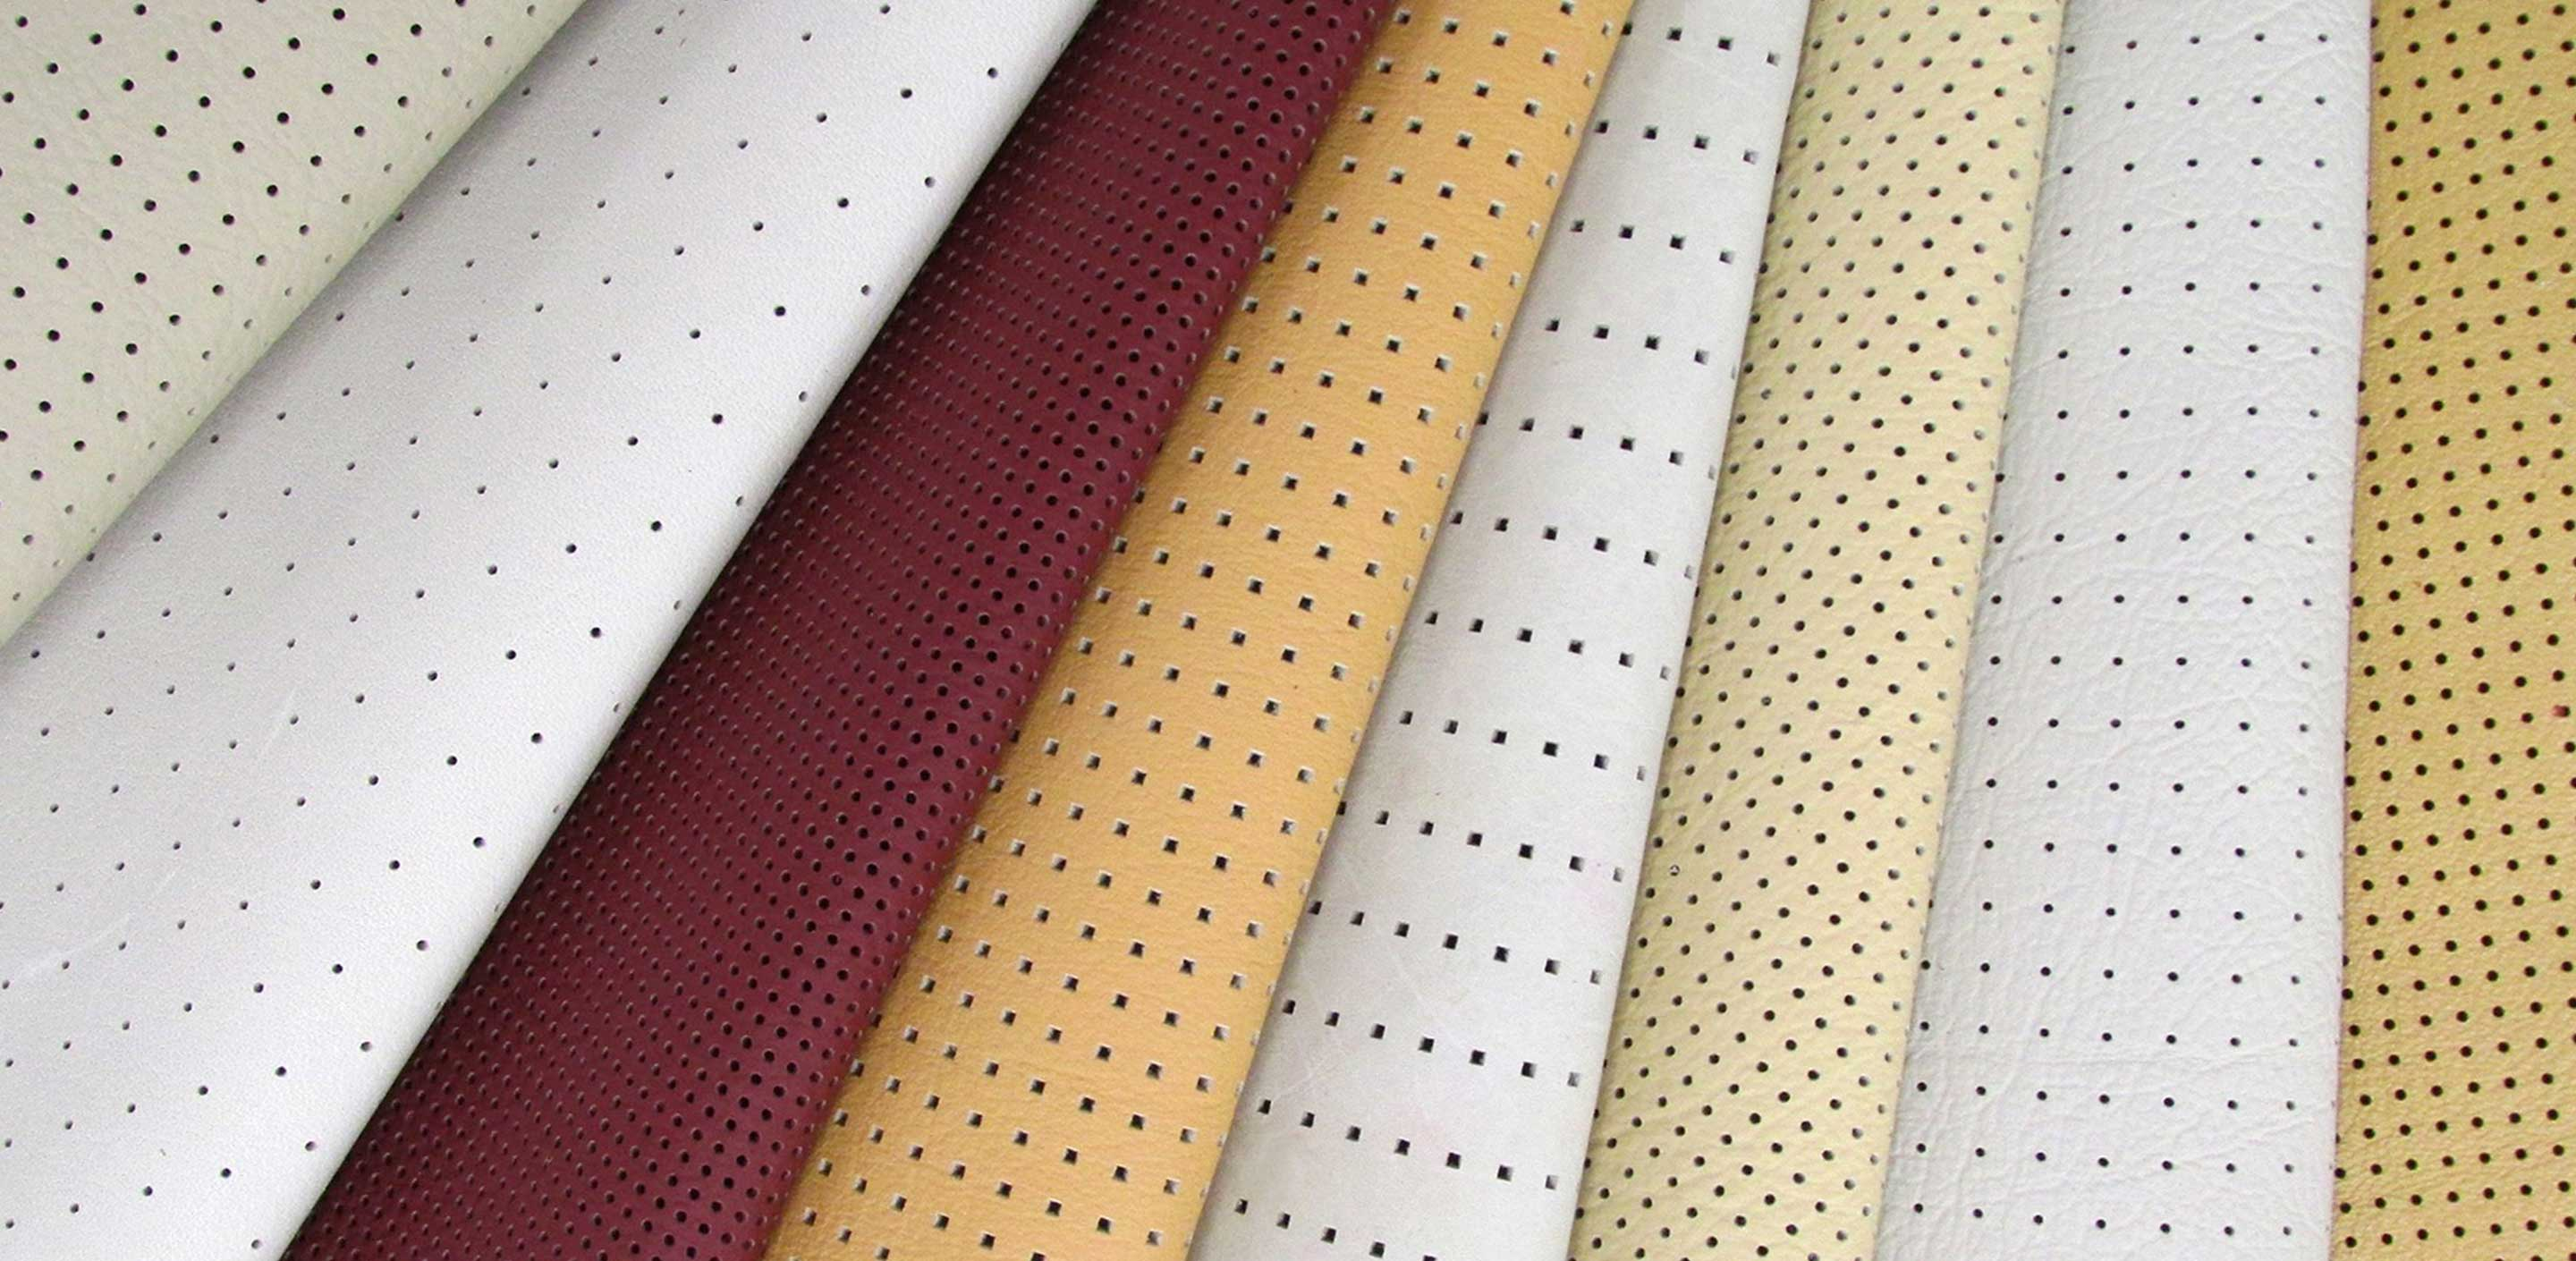 What is Perforated Leather?